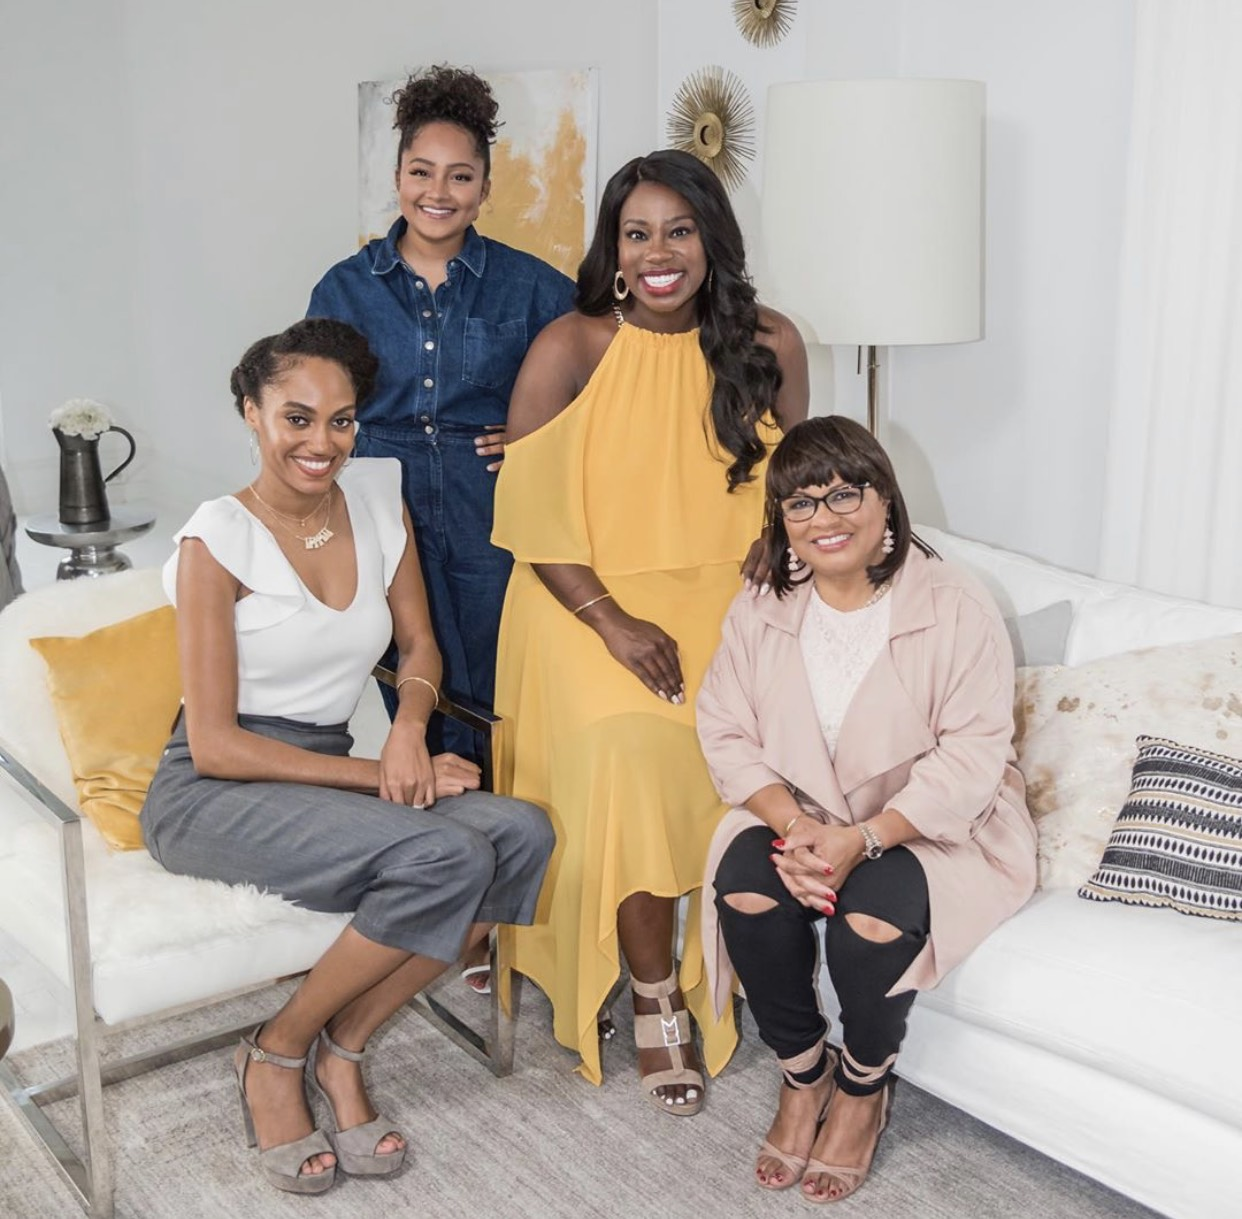 """Meet the women who reign. - Head to the """"We Shine"""" panel with entrepreneurs @nicolewalters @danachanel @jewelmelanie and McDonald's Owner/Operators @jadeashleycolin and Tanya Hill-Holliday @smallfry004It's all that and more at the Black & Positively Golden Experience.#blackandpositivelygolden #wearegolden #essencefest"""